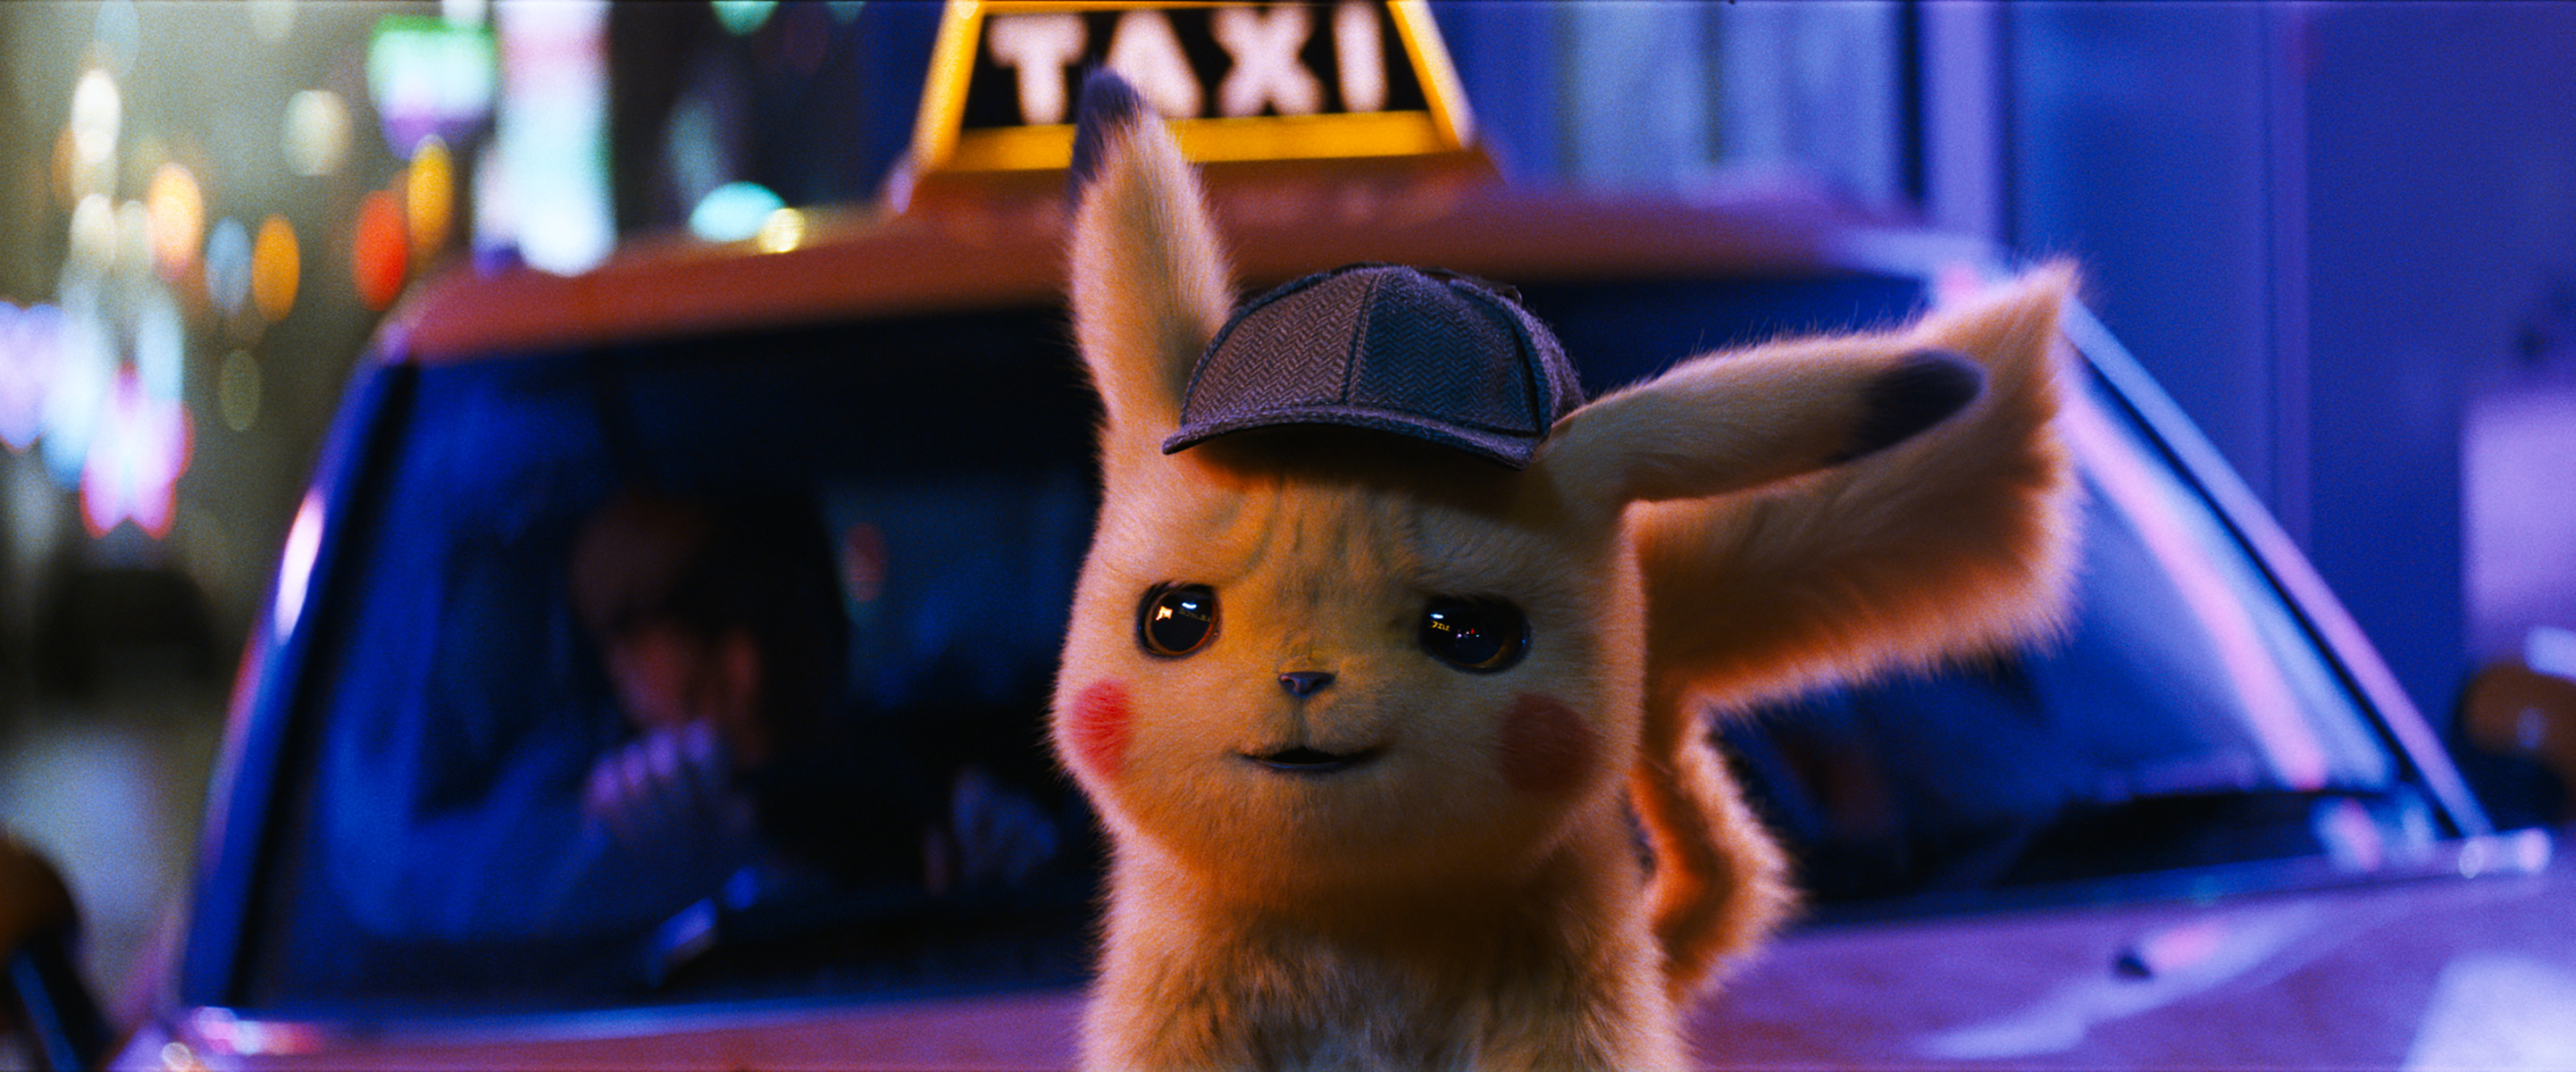 'Pokémon: Detective Pikachu' After Credits Scene End Credits Scene